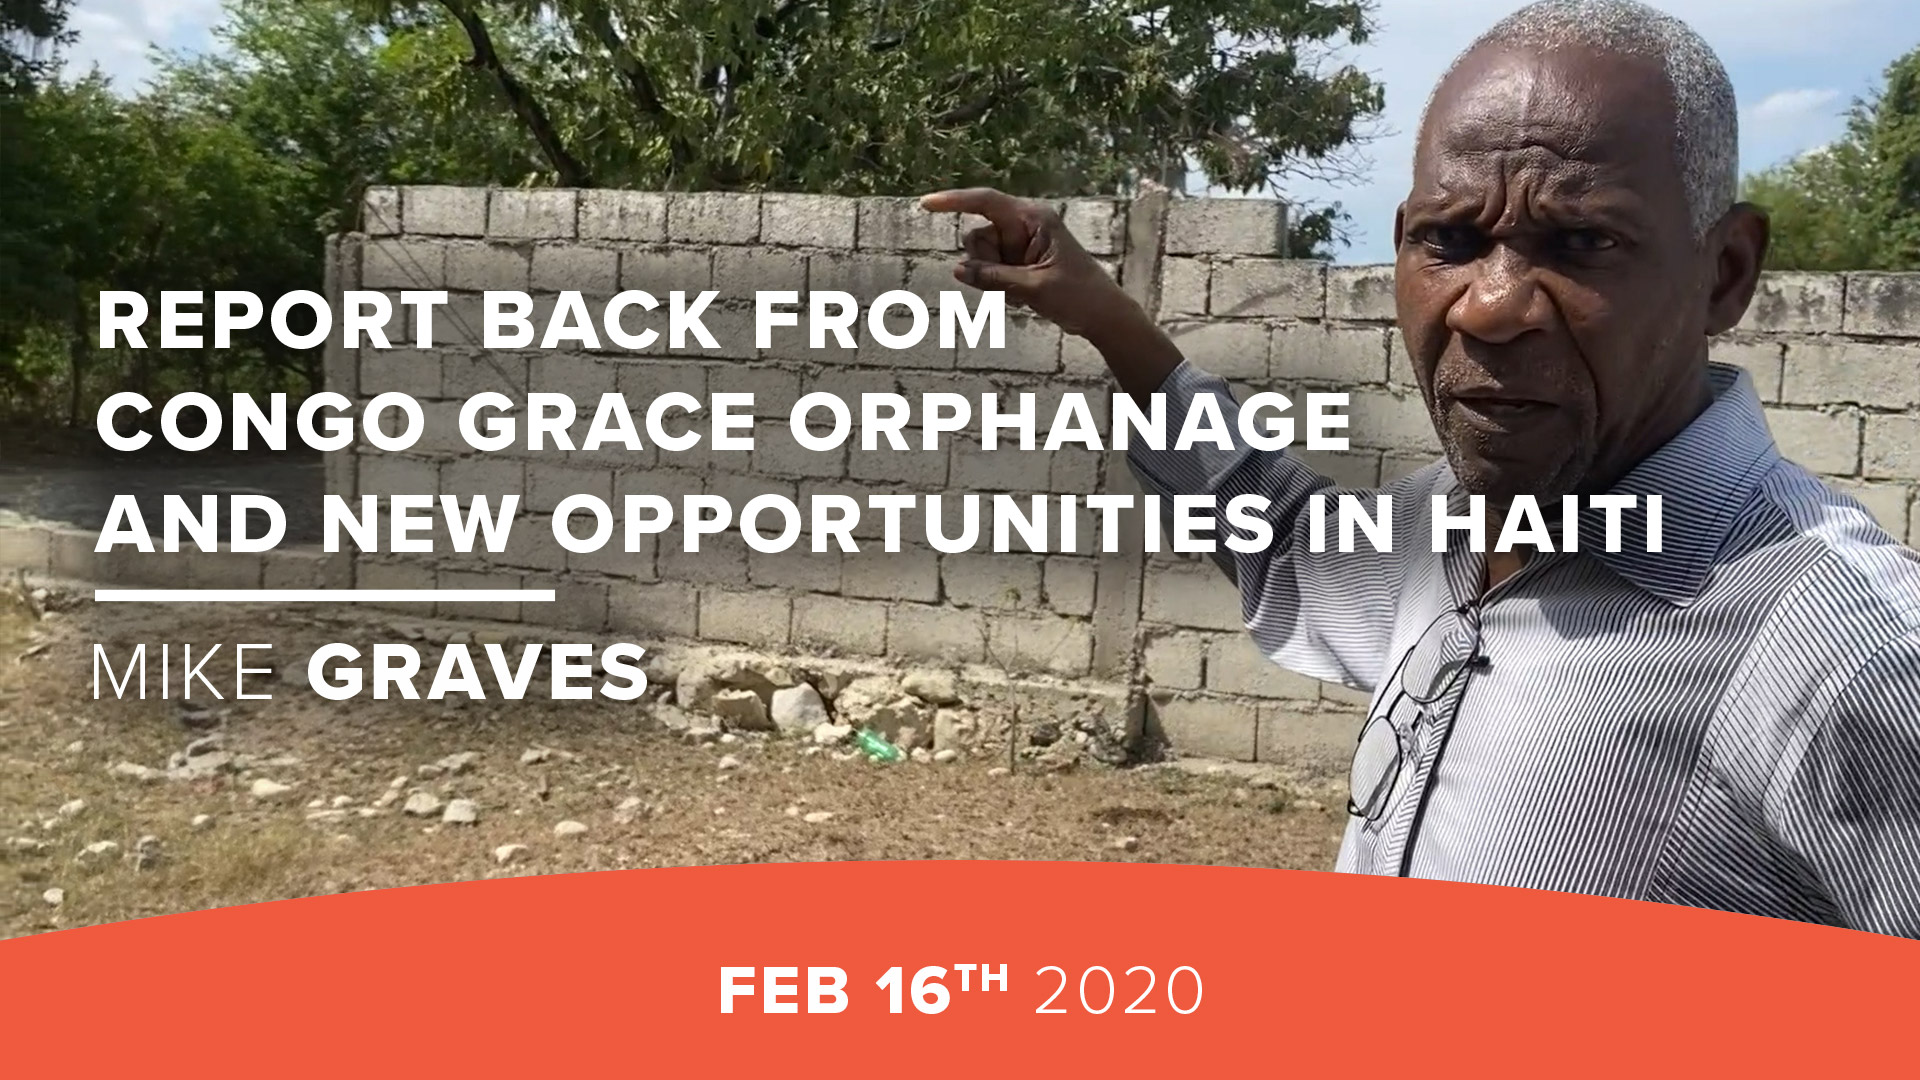 Report Back From Congo Grace Orphanage and New Opportunities in Haiti